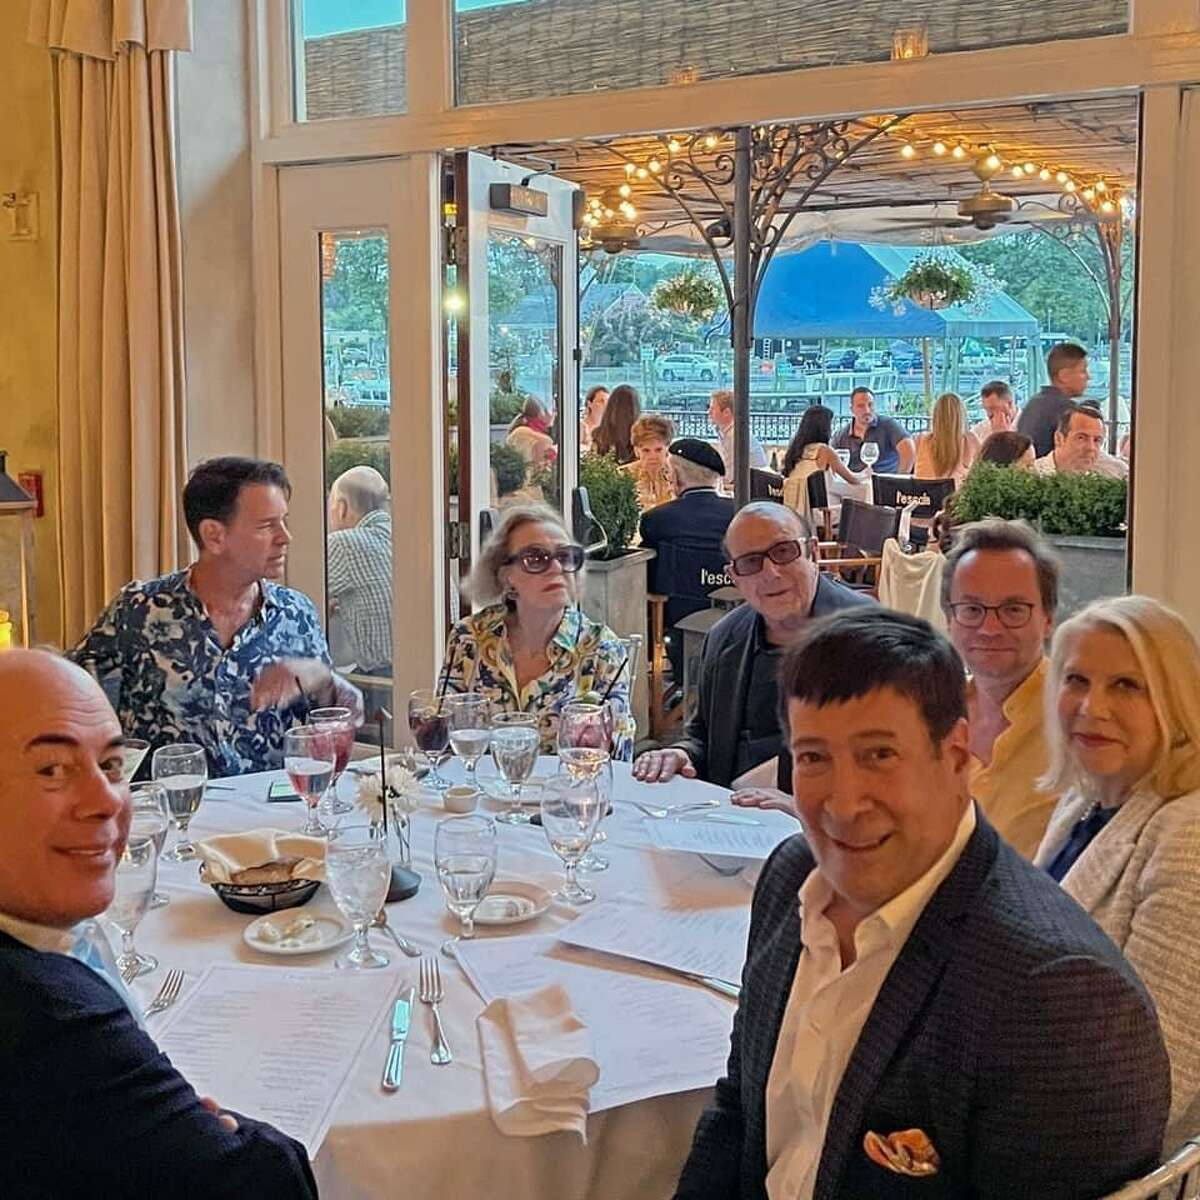 Bedford, N.Y. resident and music mogul Clive Davis dines at L'Escale at the Delamar in Greenwich last weekend with WOR radio host Mark Simone; woman's rights activist/philanthropist Francine LeFrak; director/screenwriter Rick Friedberg; and interior designer Greg Schriefer.